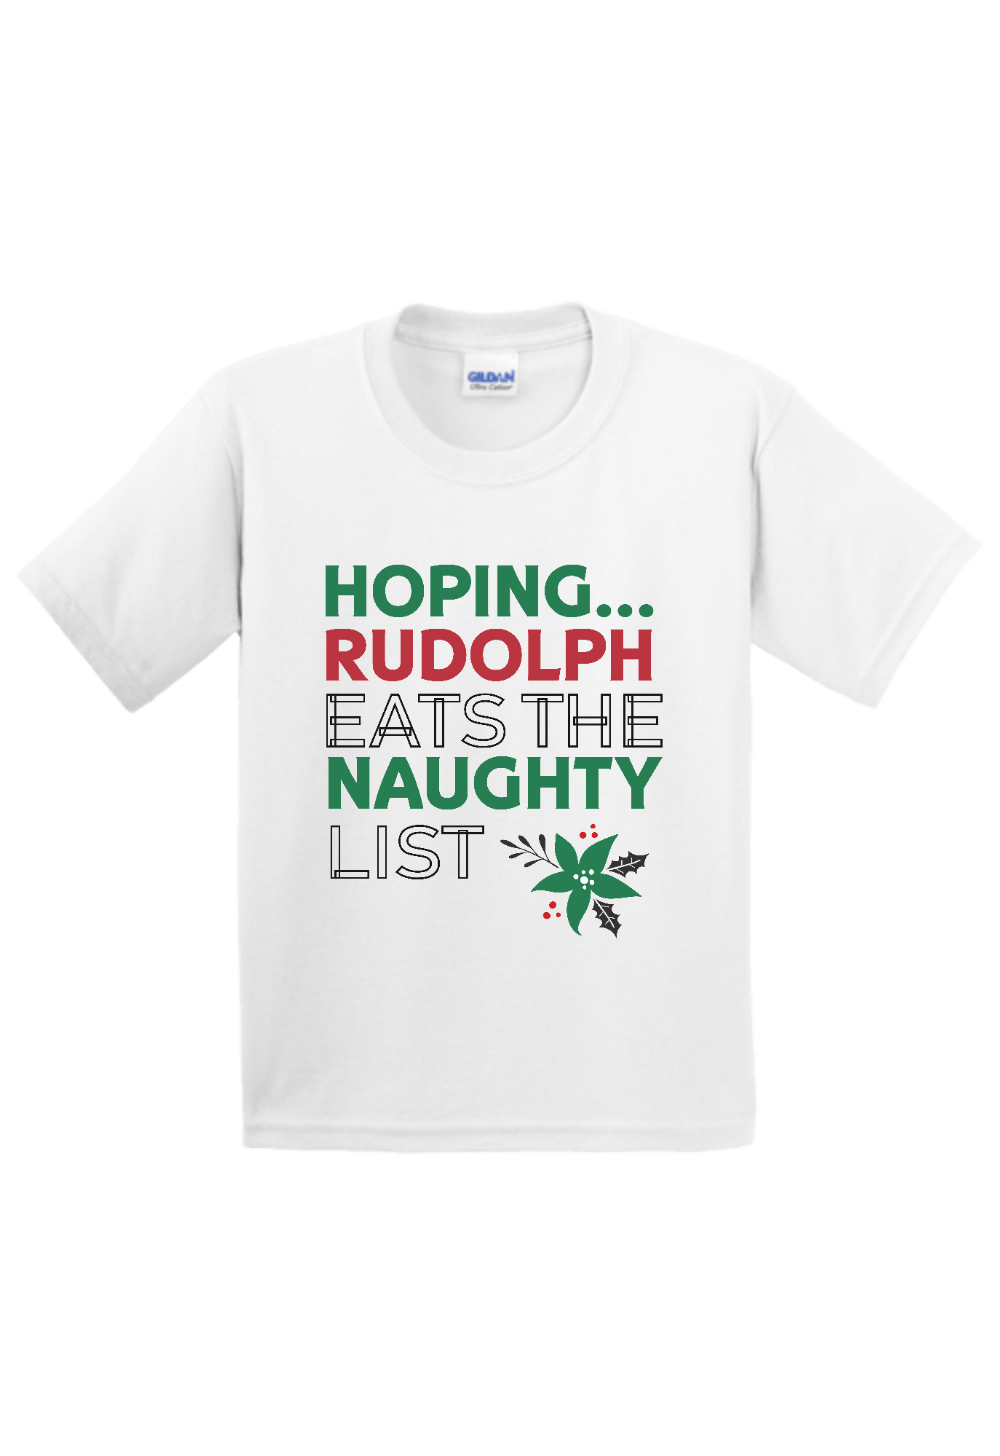 Hoping Rudolph Eats the Naughty List Christmas Youth Shirt